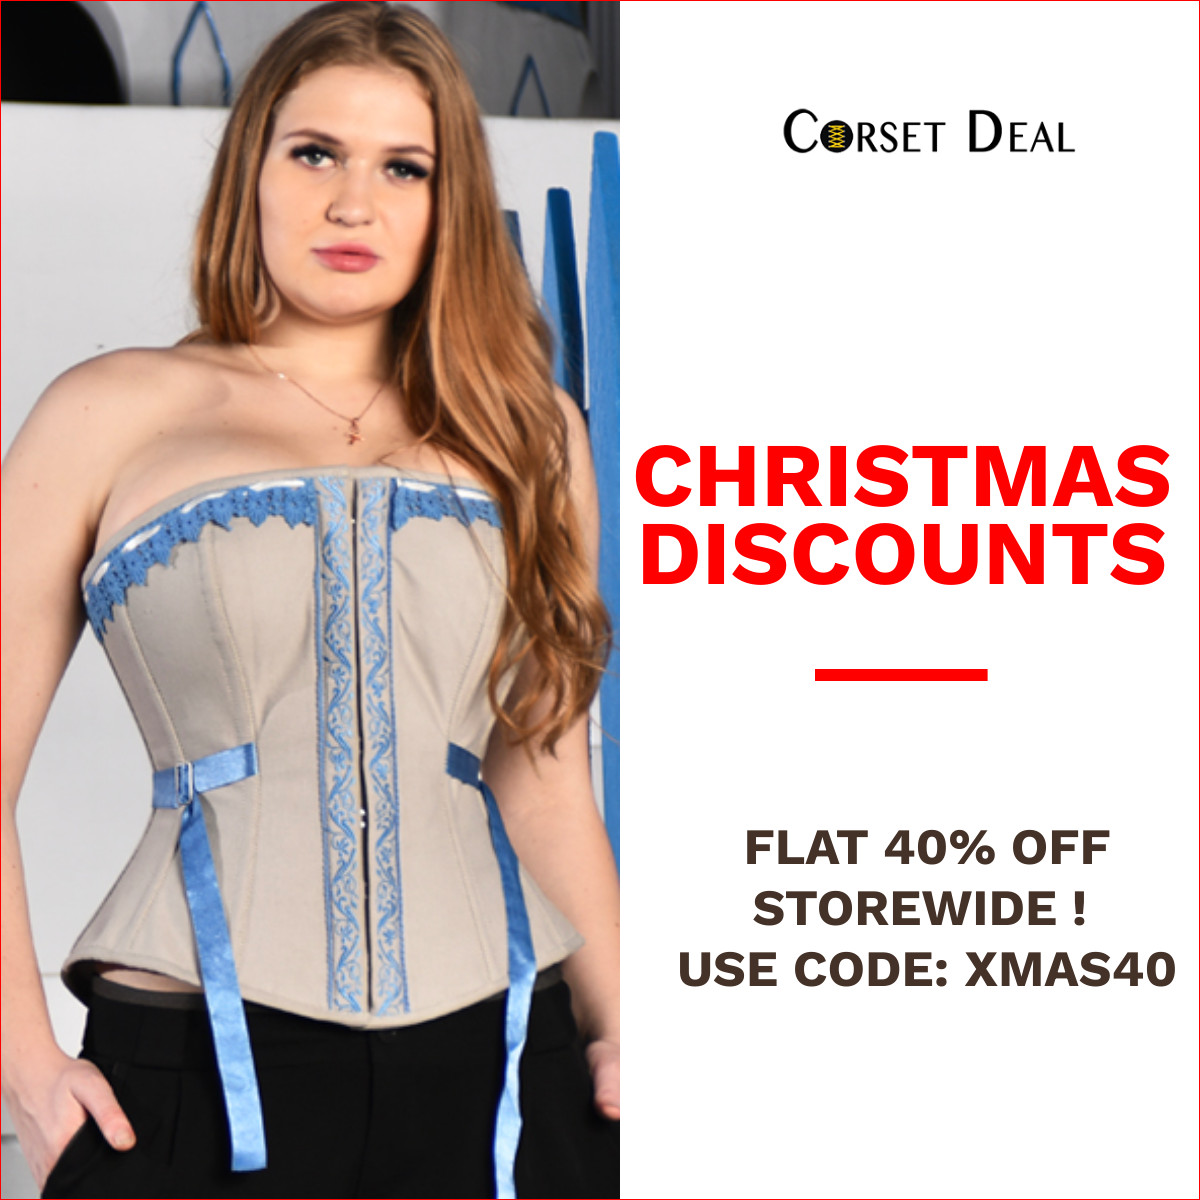 Christmas Discounts Flat 40% Off Storewide